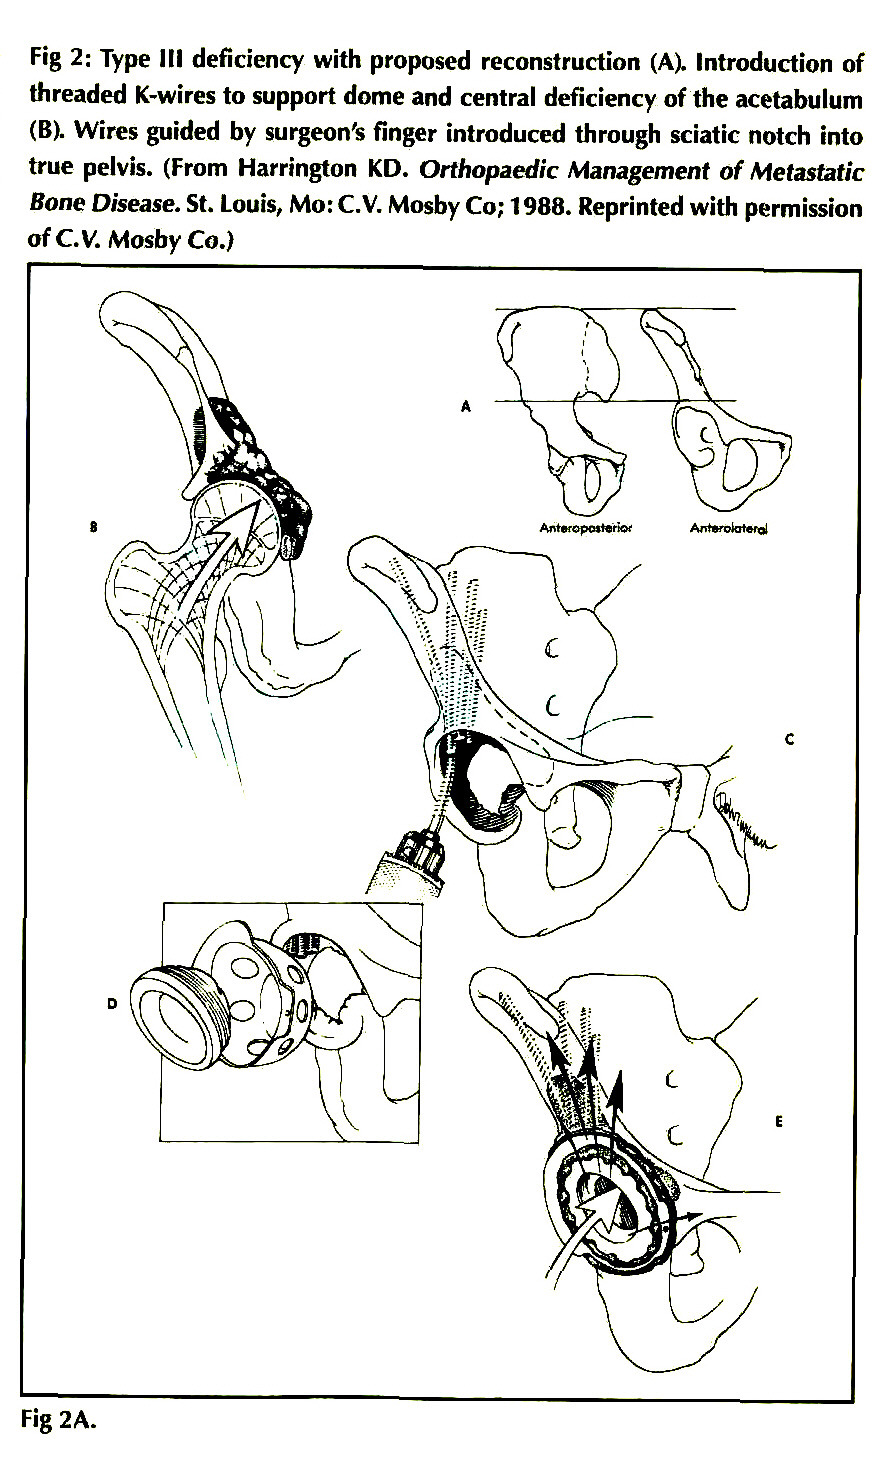 PATHOLOGIC FRACTURES OF THE ACETABULUM AND THE PELVIS